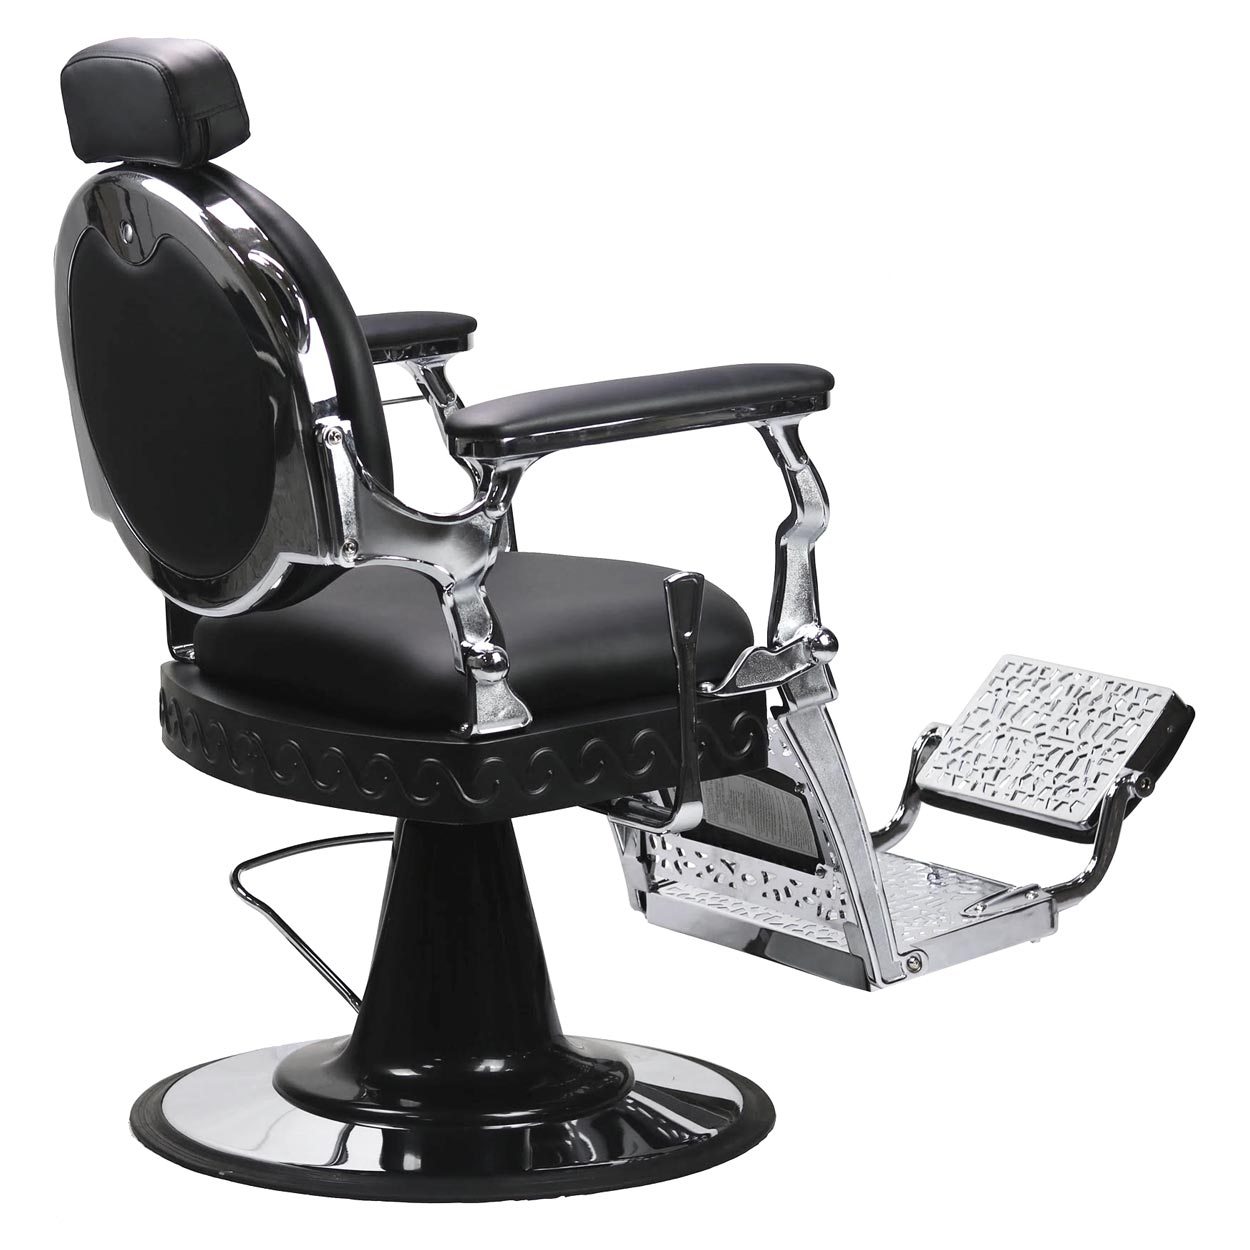 Sutton Vintage Barber Chair alternative product image 5